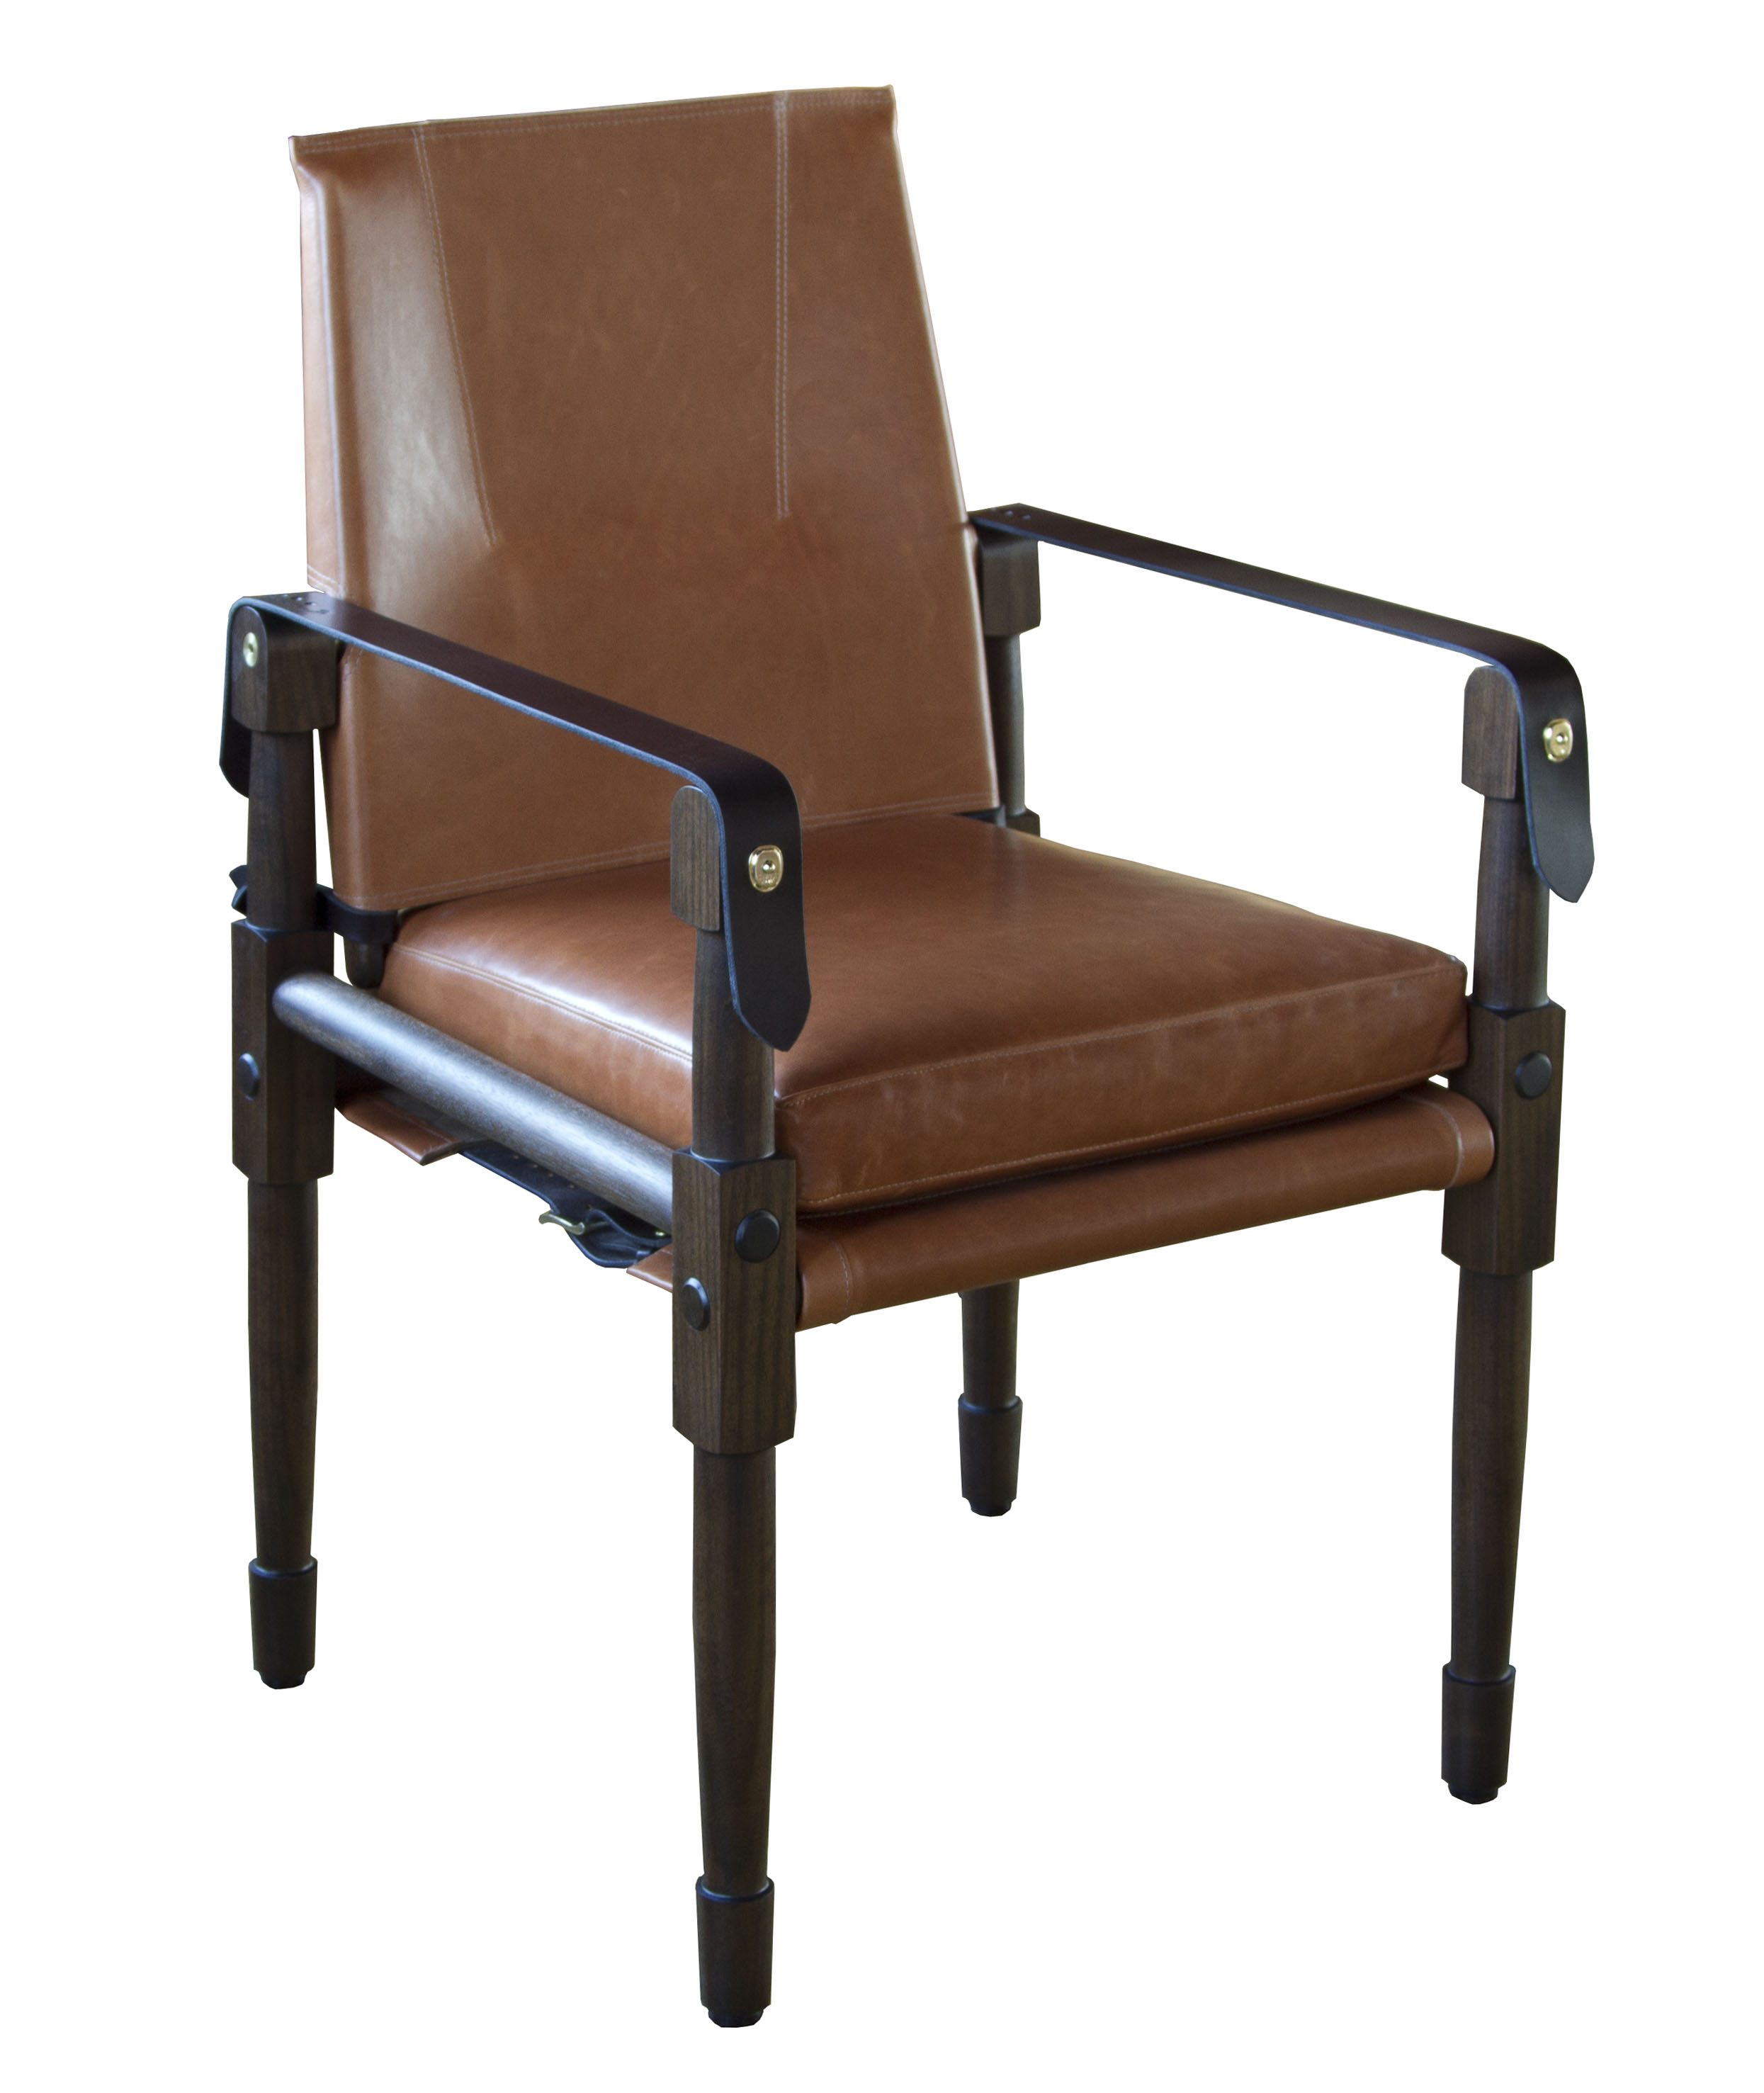 Medium brown white oak with Moore & Giles, Diablo: acorn upholstery leather and dark chocolate English bridle leather straps  08